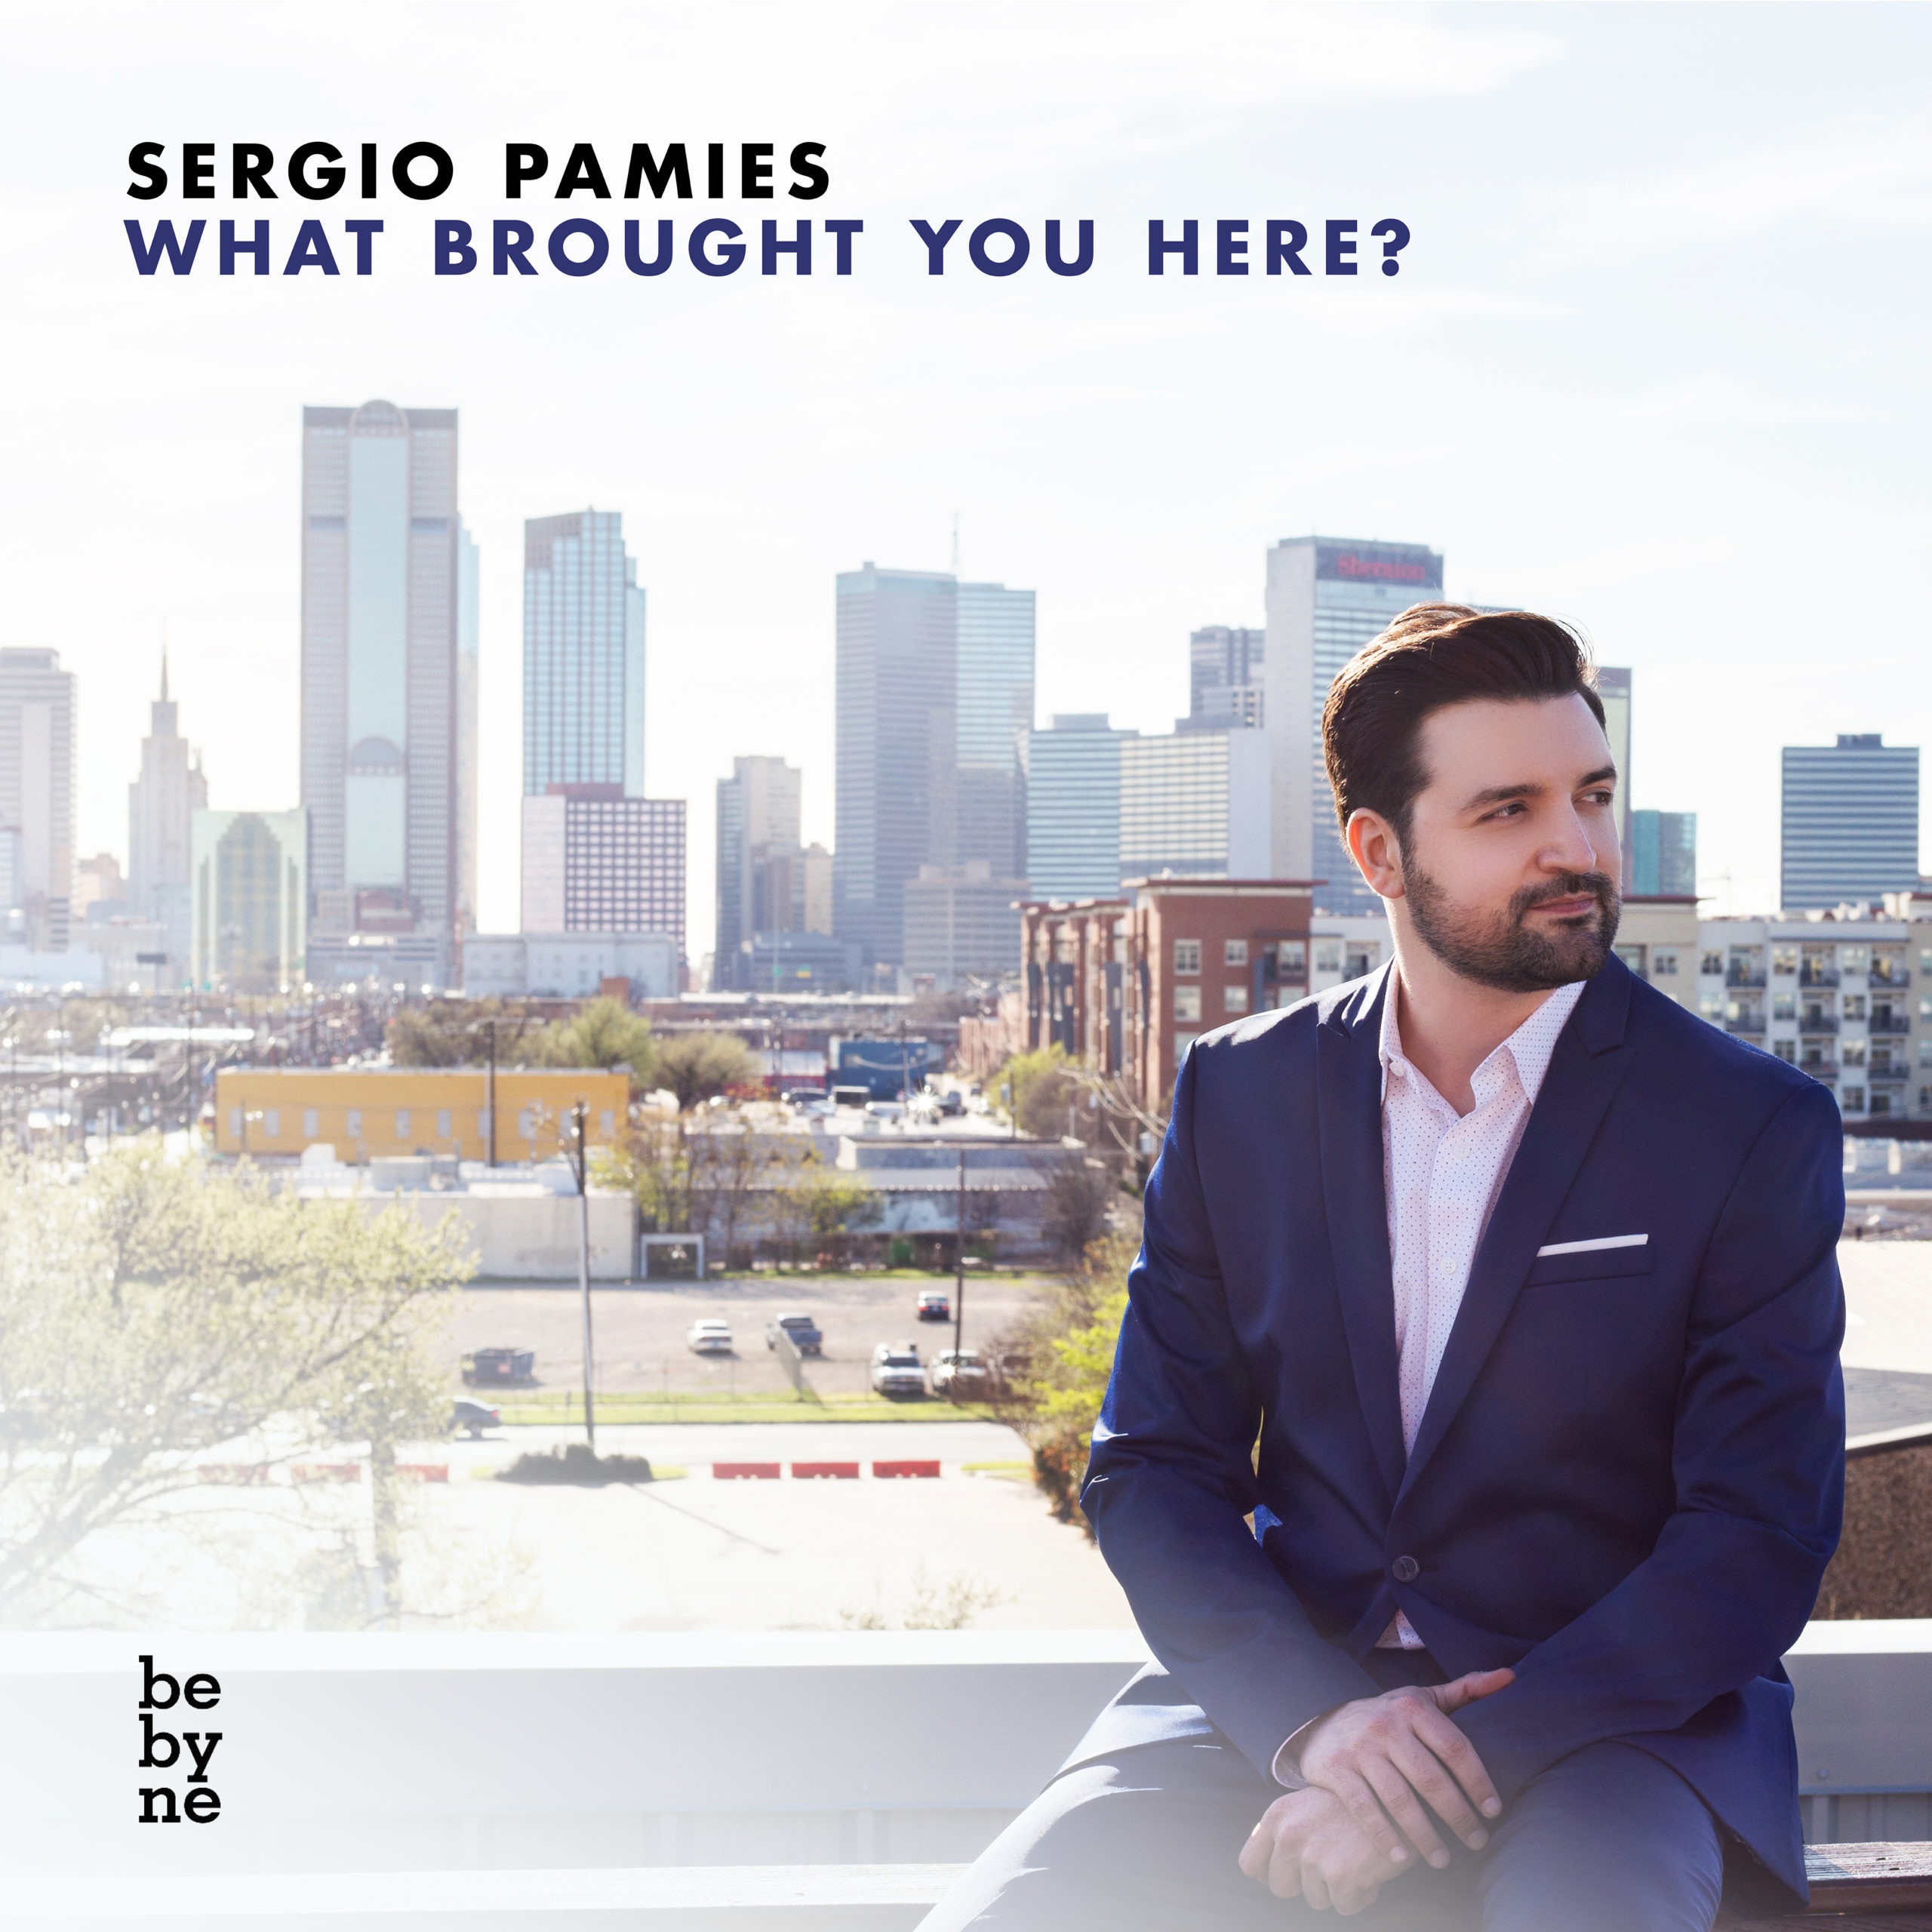 Sergio Pamies: What Brought You Here?